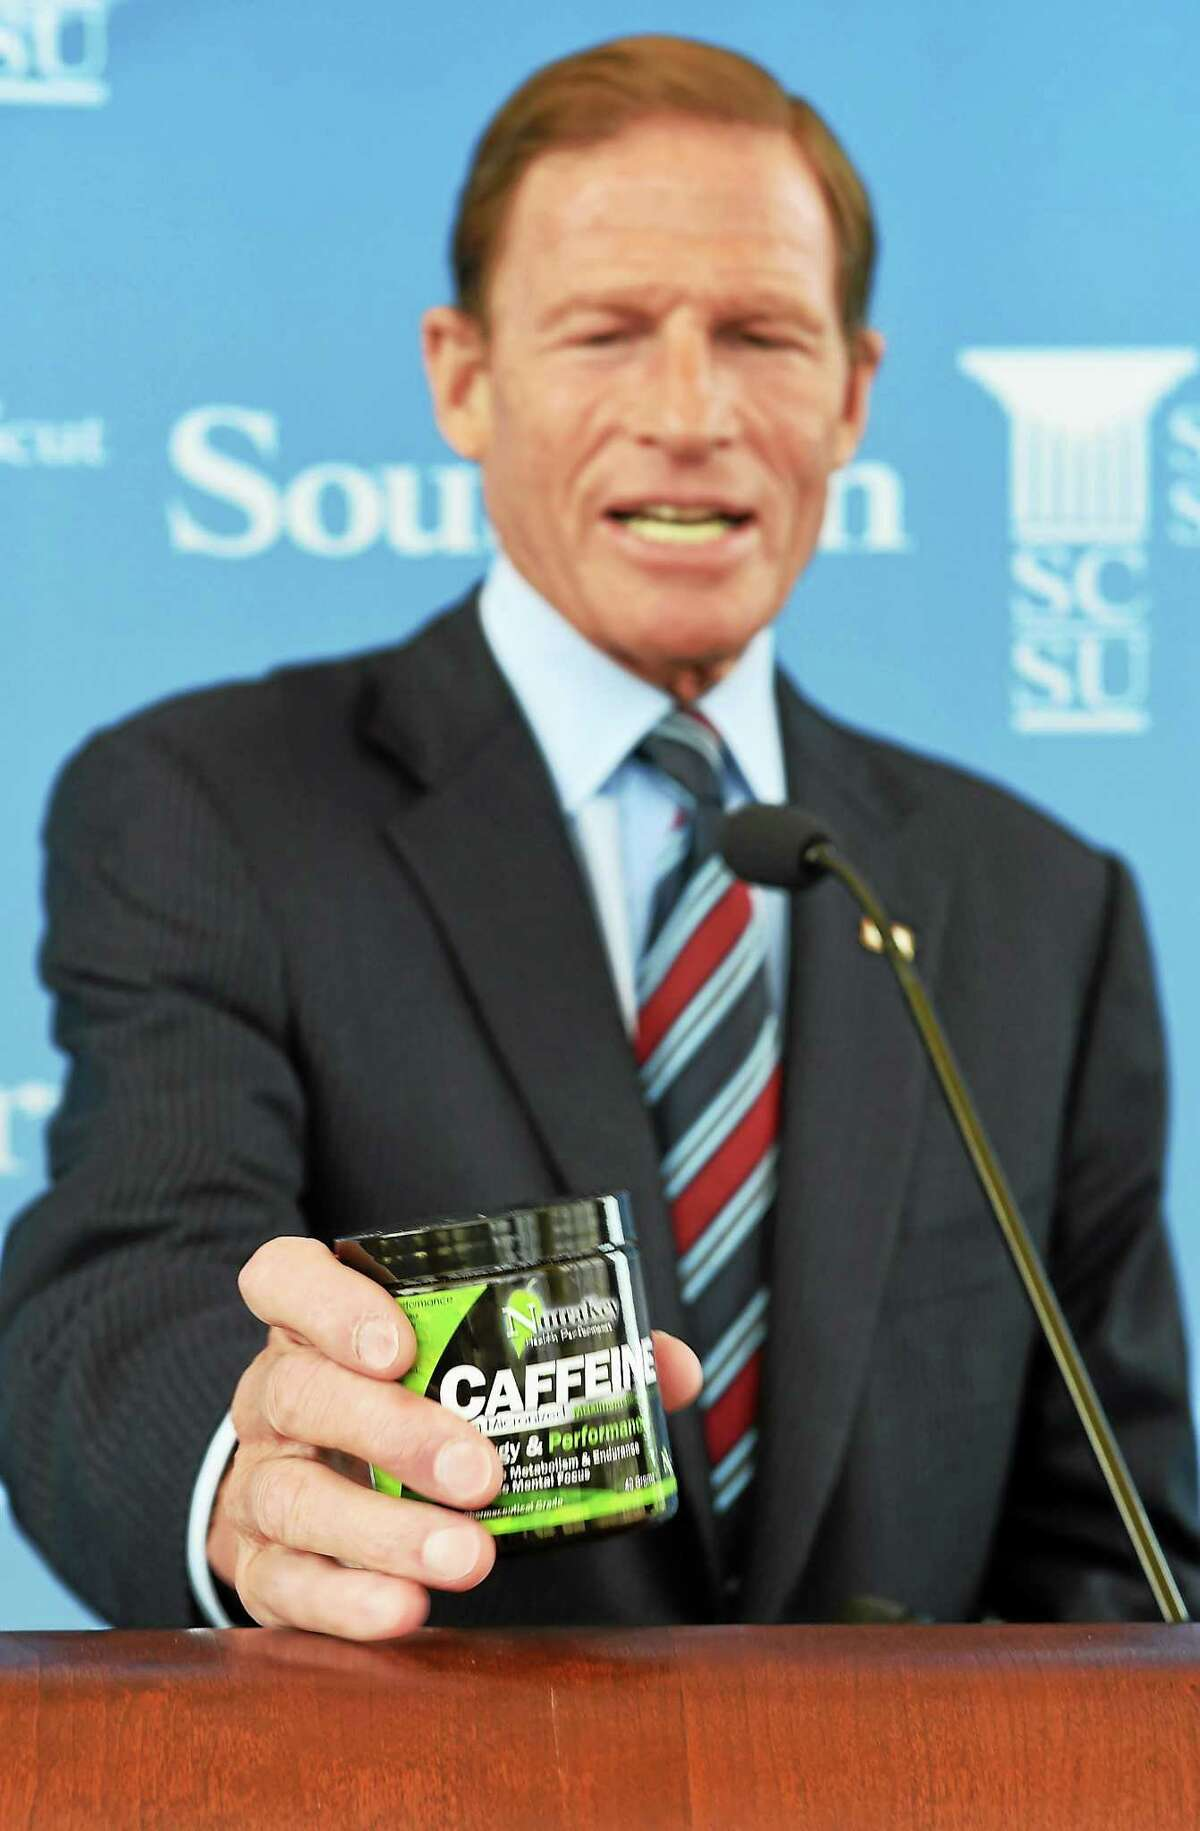 U.S. Senator Richard Blumenthal holds an example of the powdered caffeine he is asking the FDA to remove from store shelves on August 21, 2014.